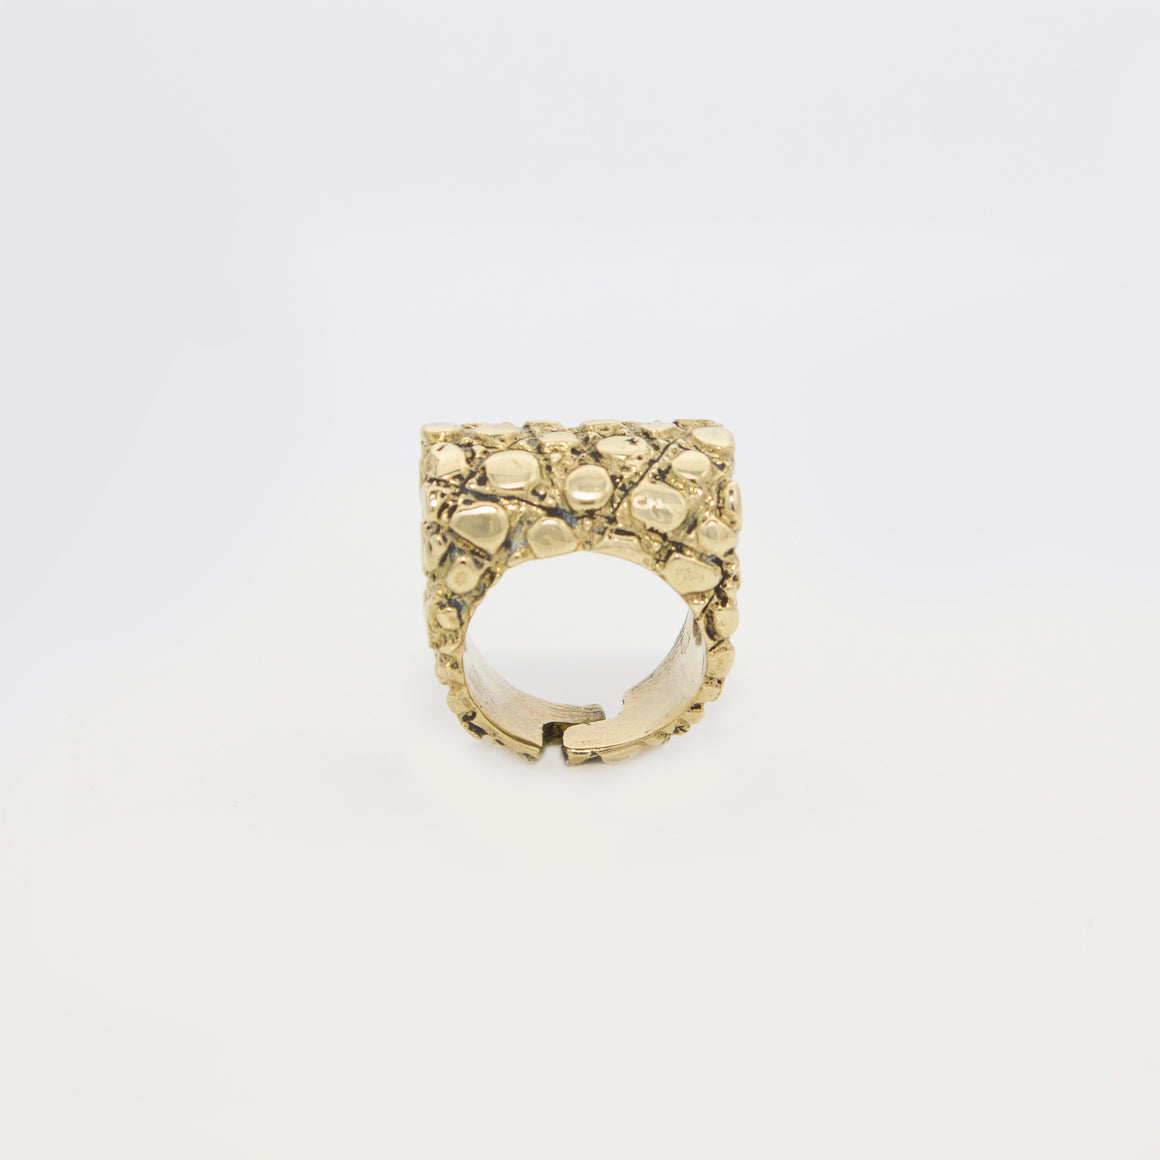 TUBE SHAPE IGUANA PATTERN RING